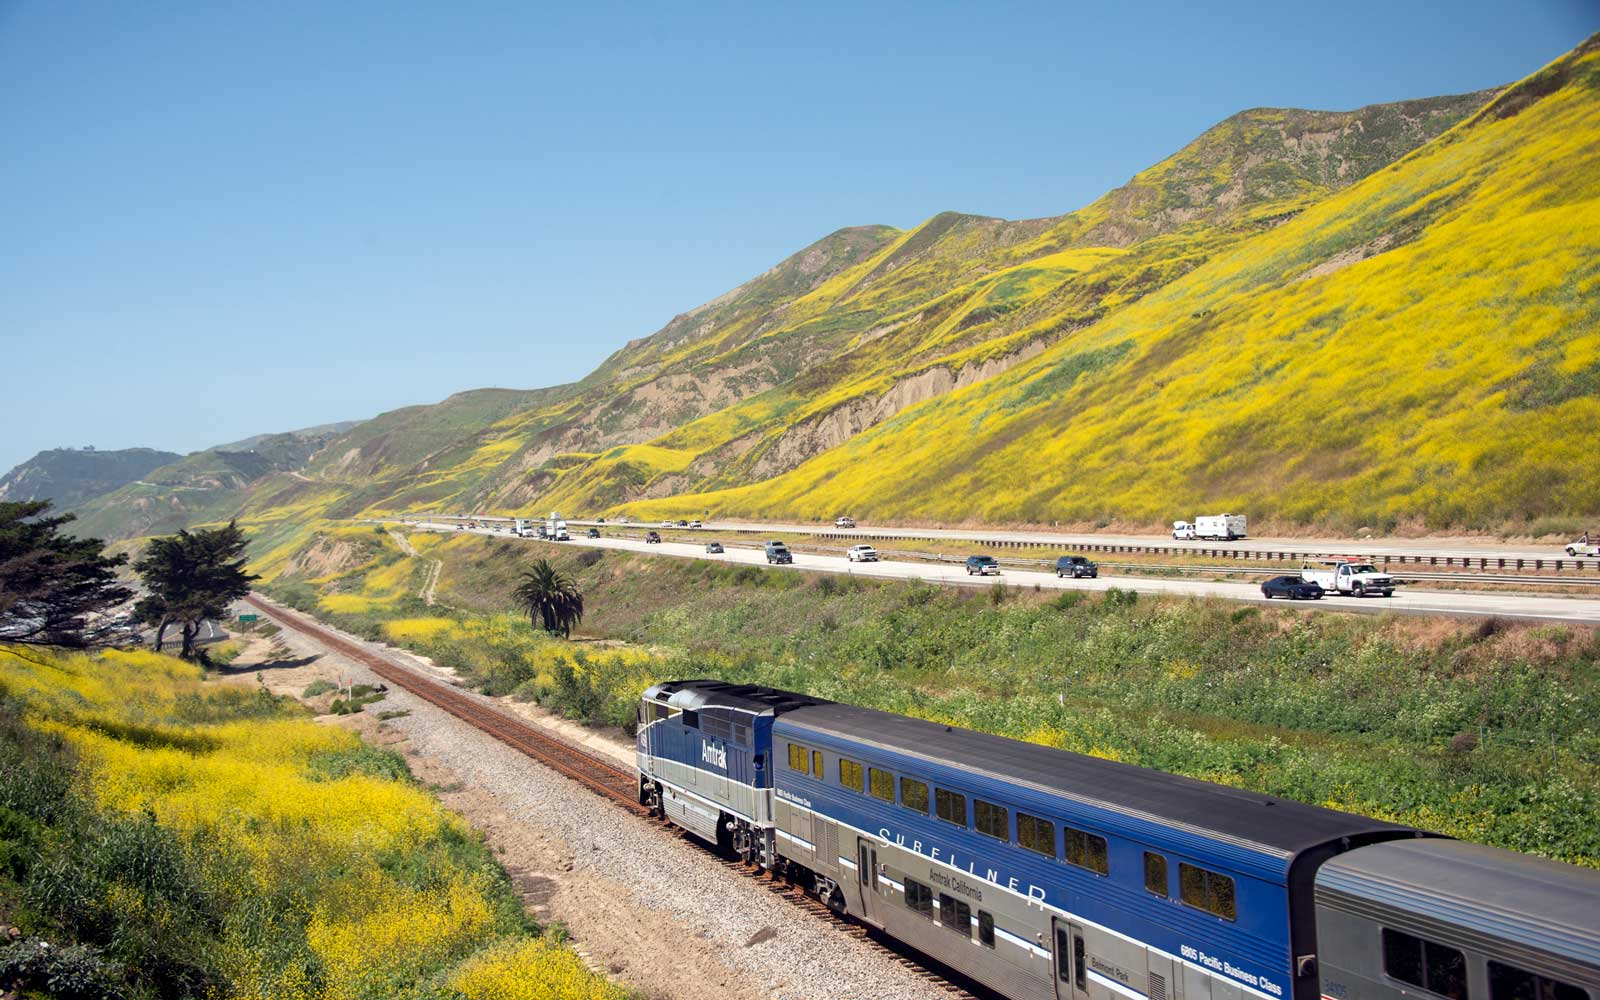 Amtrak Is Having a 2-for-1 Mother's Day Sale to Inspire You to Travel With Your Mom